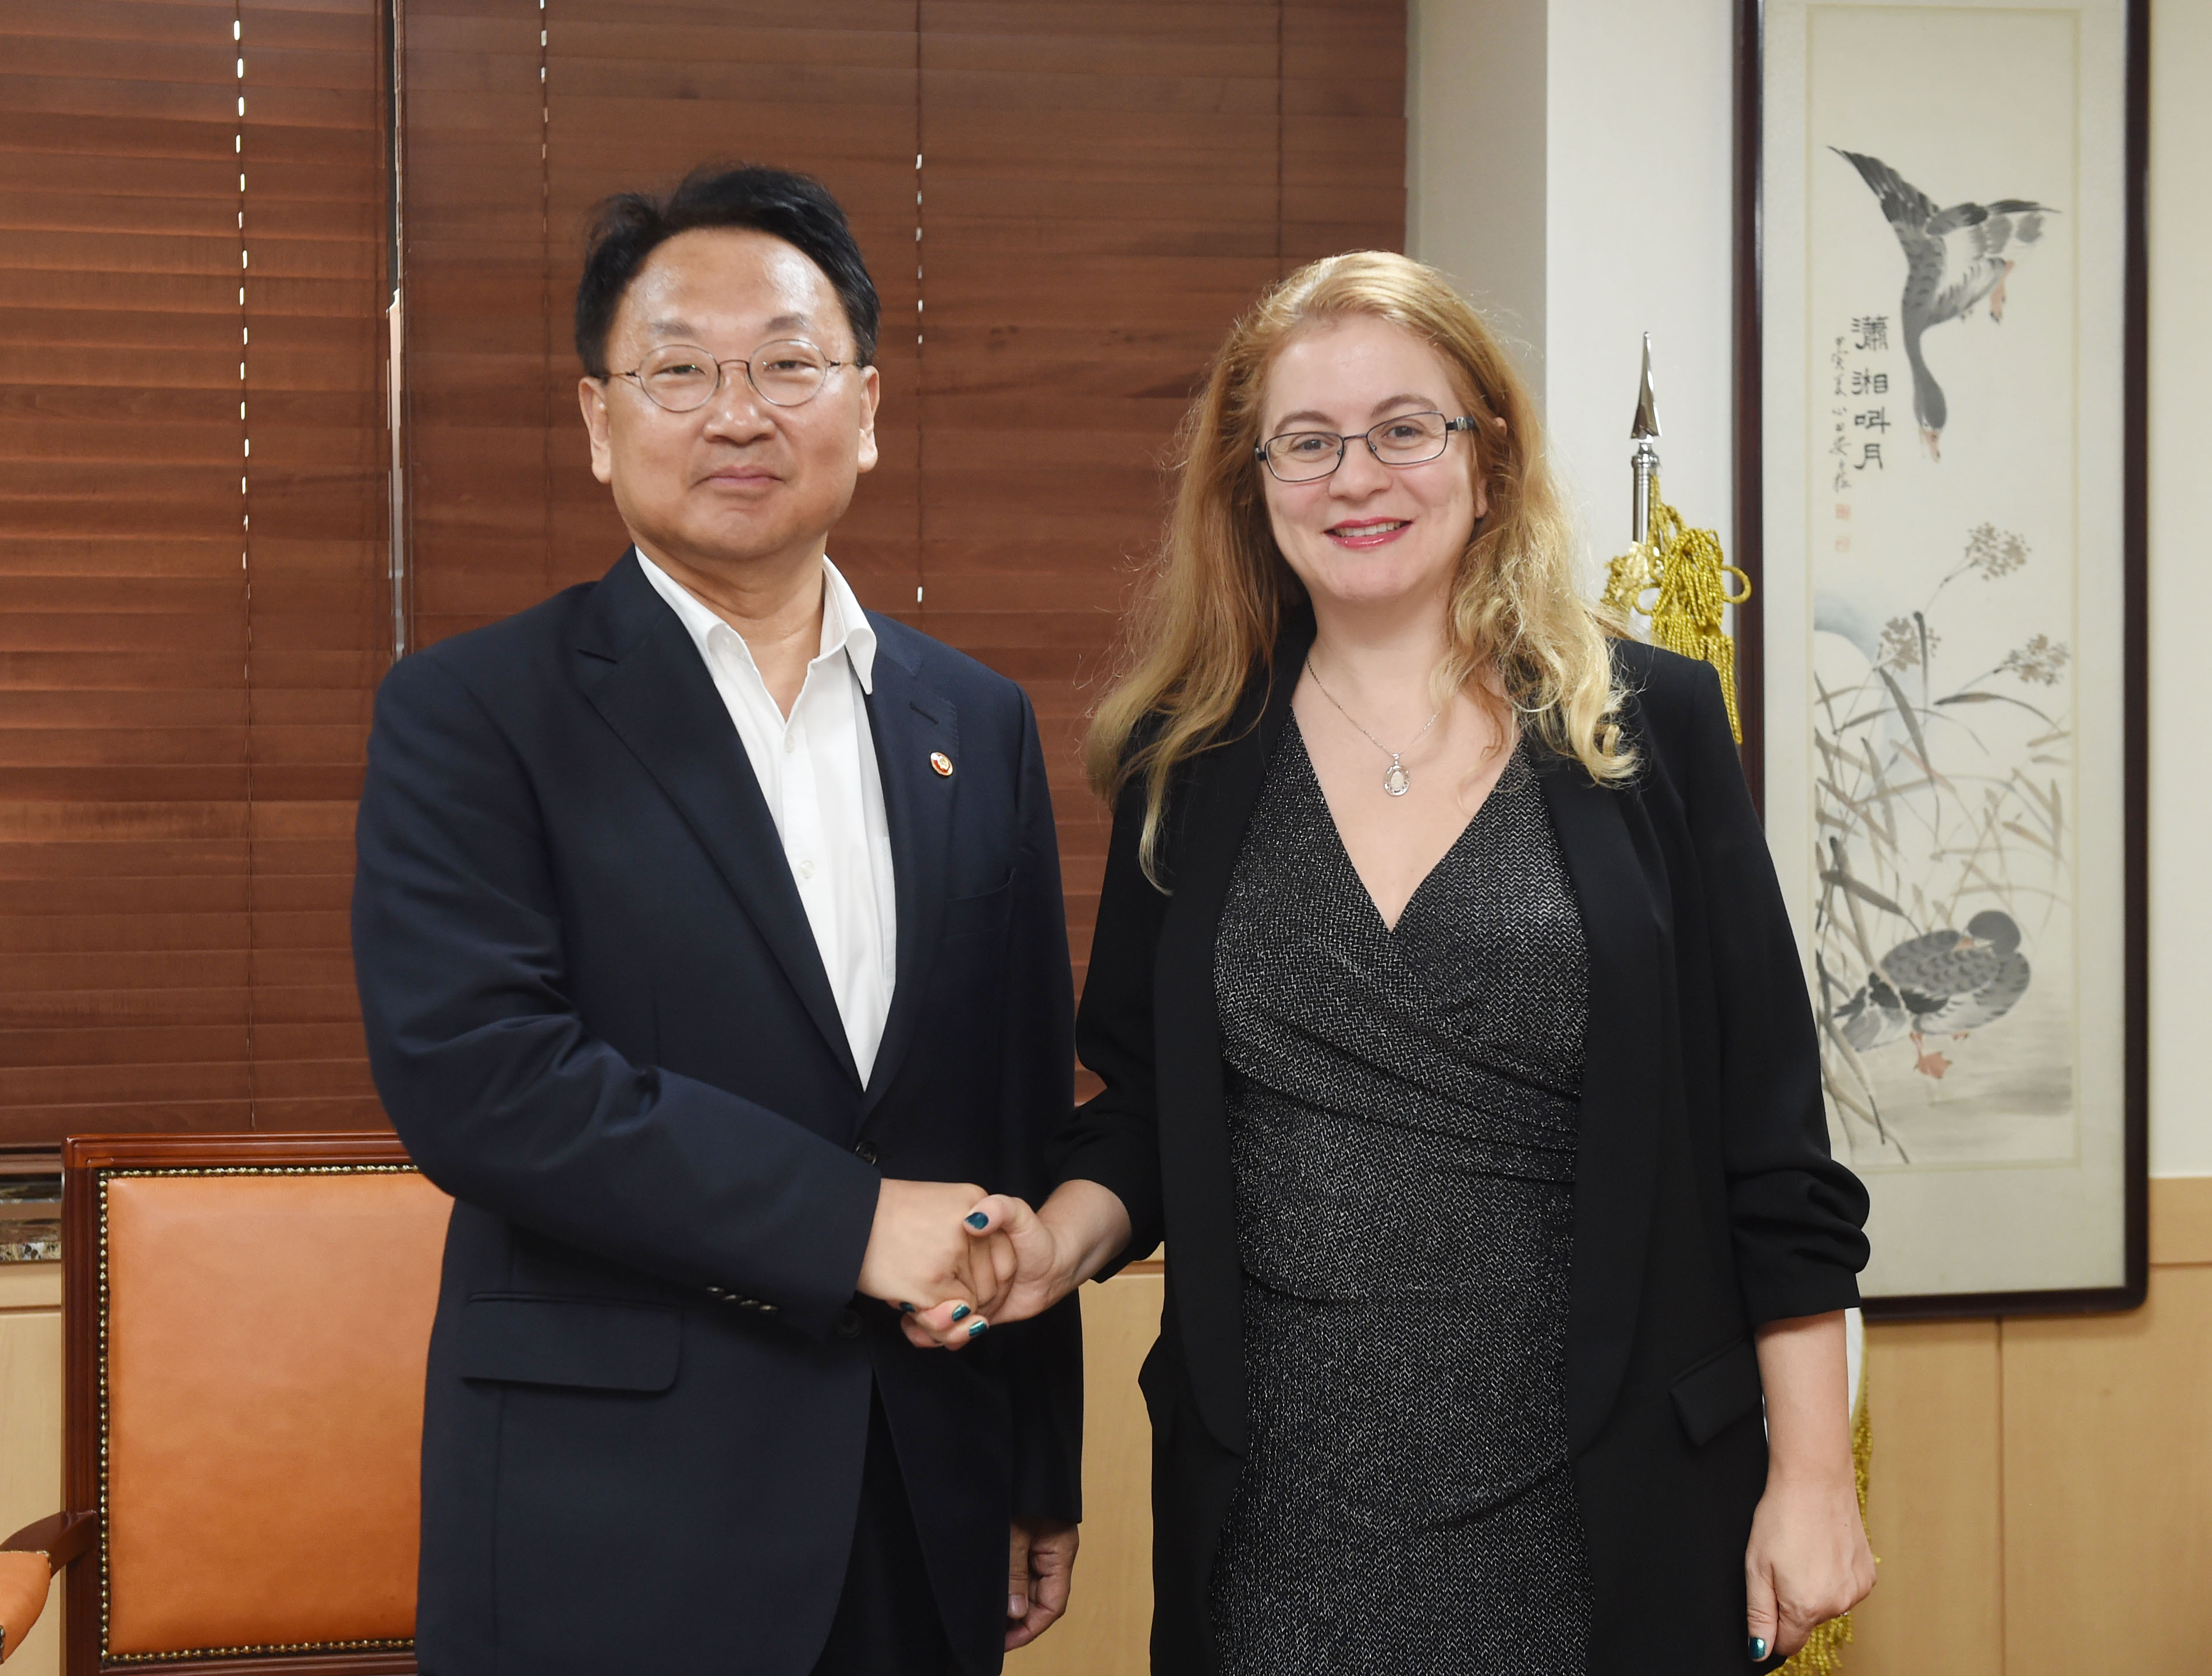 Deputy Prime Minister Yoo meets with GCF Executive Director Hela Cheikhrouhou